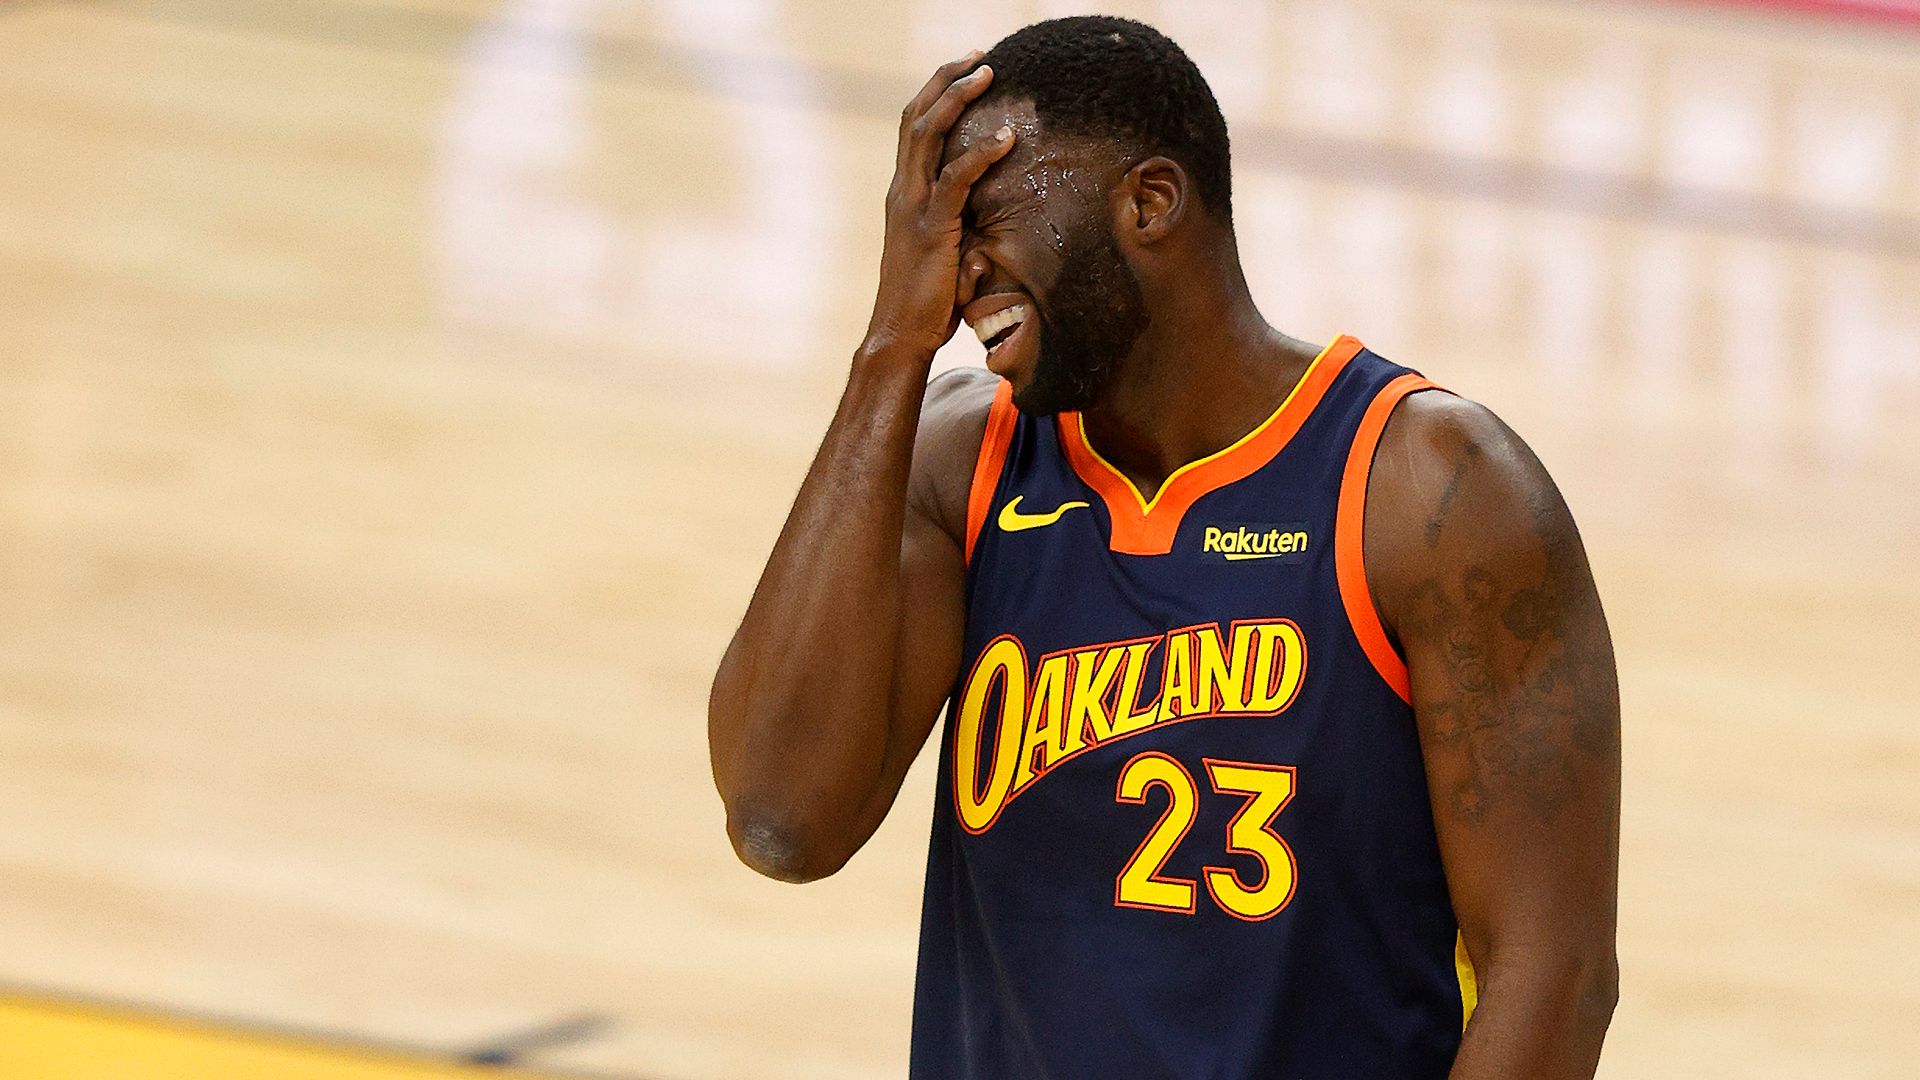 Hornets stun Warriors after Draymond Green's late ejection; Steve Kerr says forward 'crossed the line'